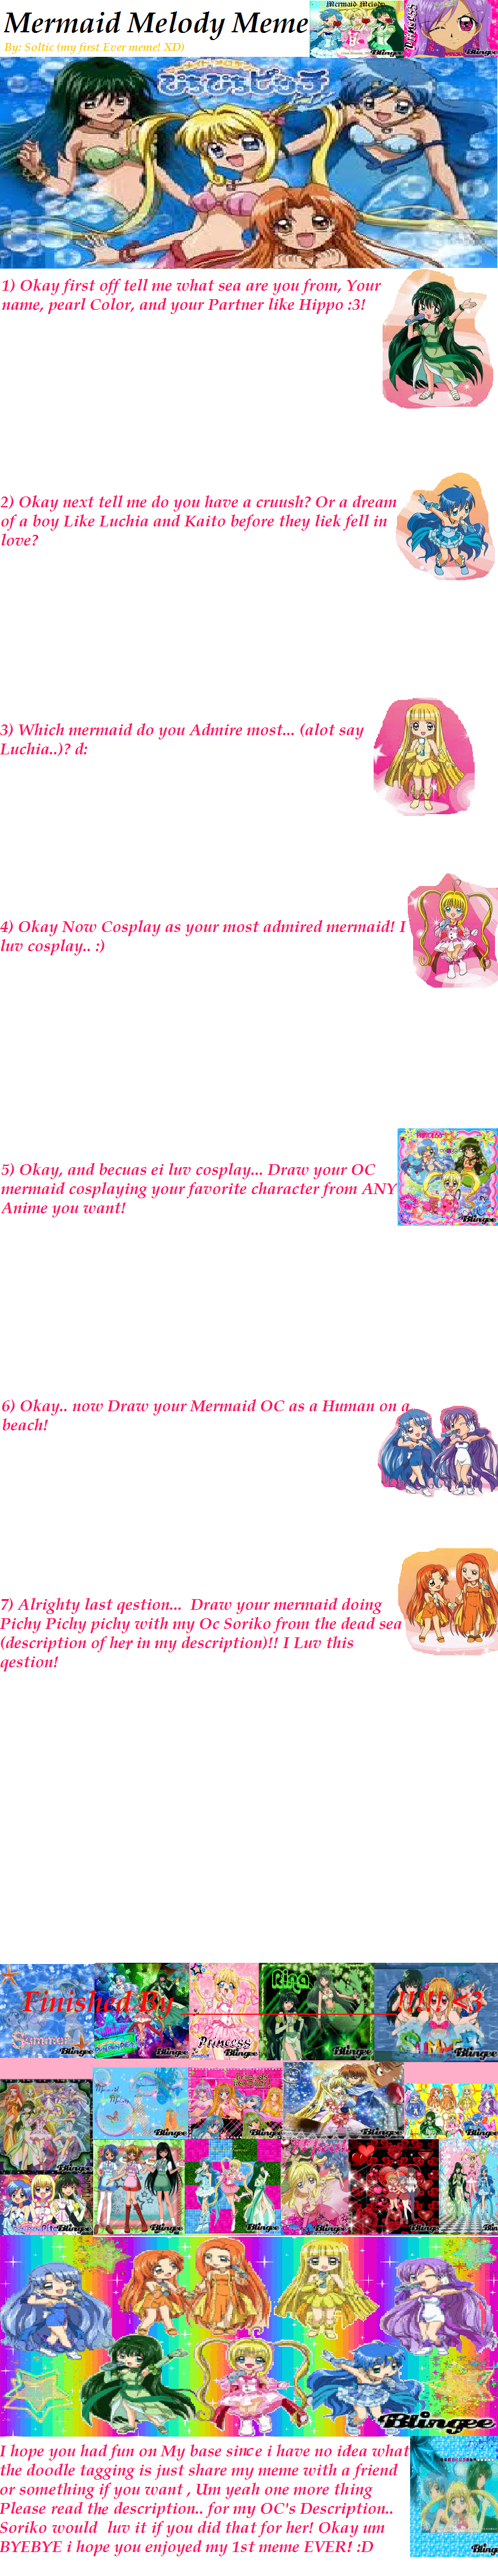 mermaid_melody_meme_by_soltic d490lsp mermaid melody meme by soltic on deviantart